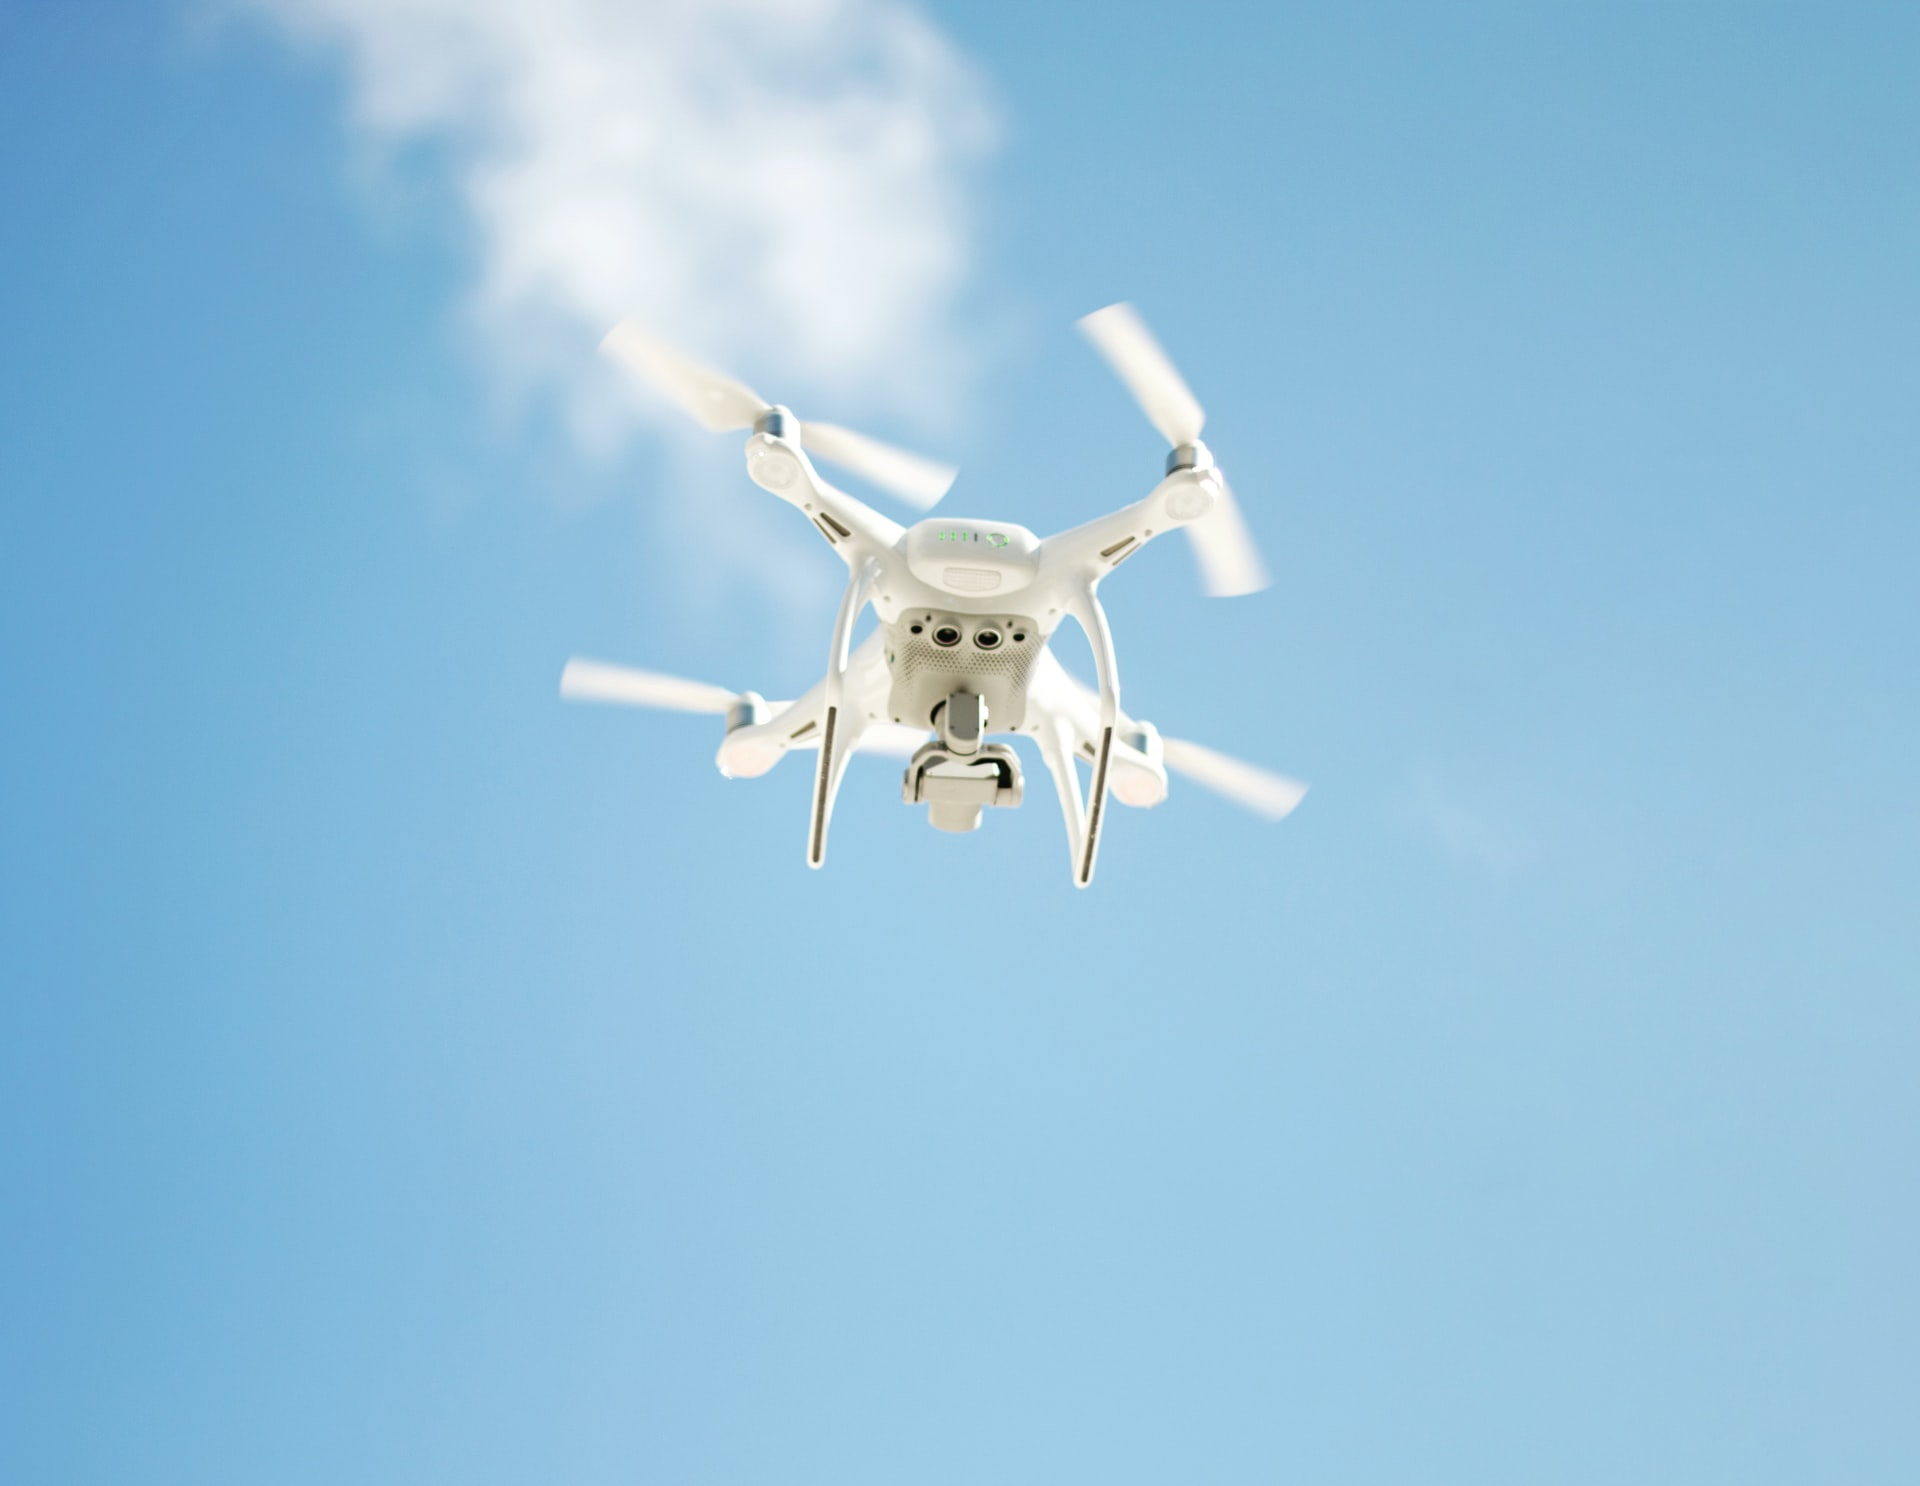 UAV Tech is Taking off in the COVID Economy